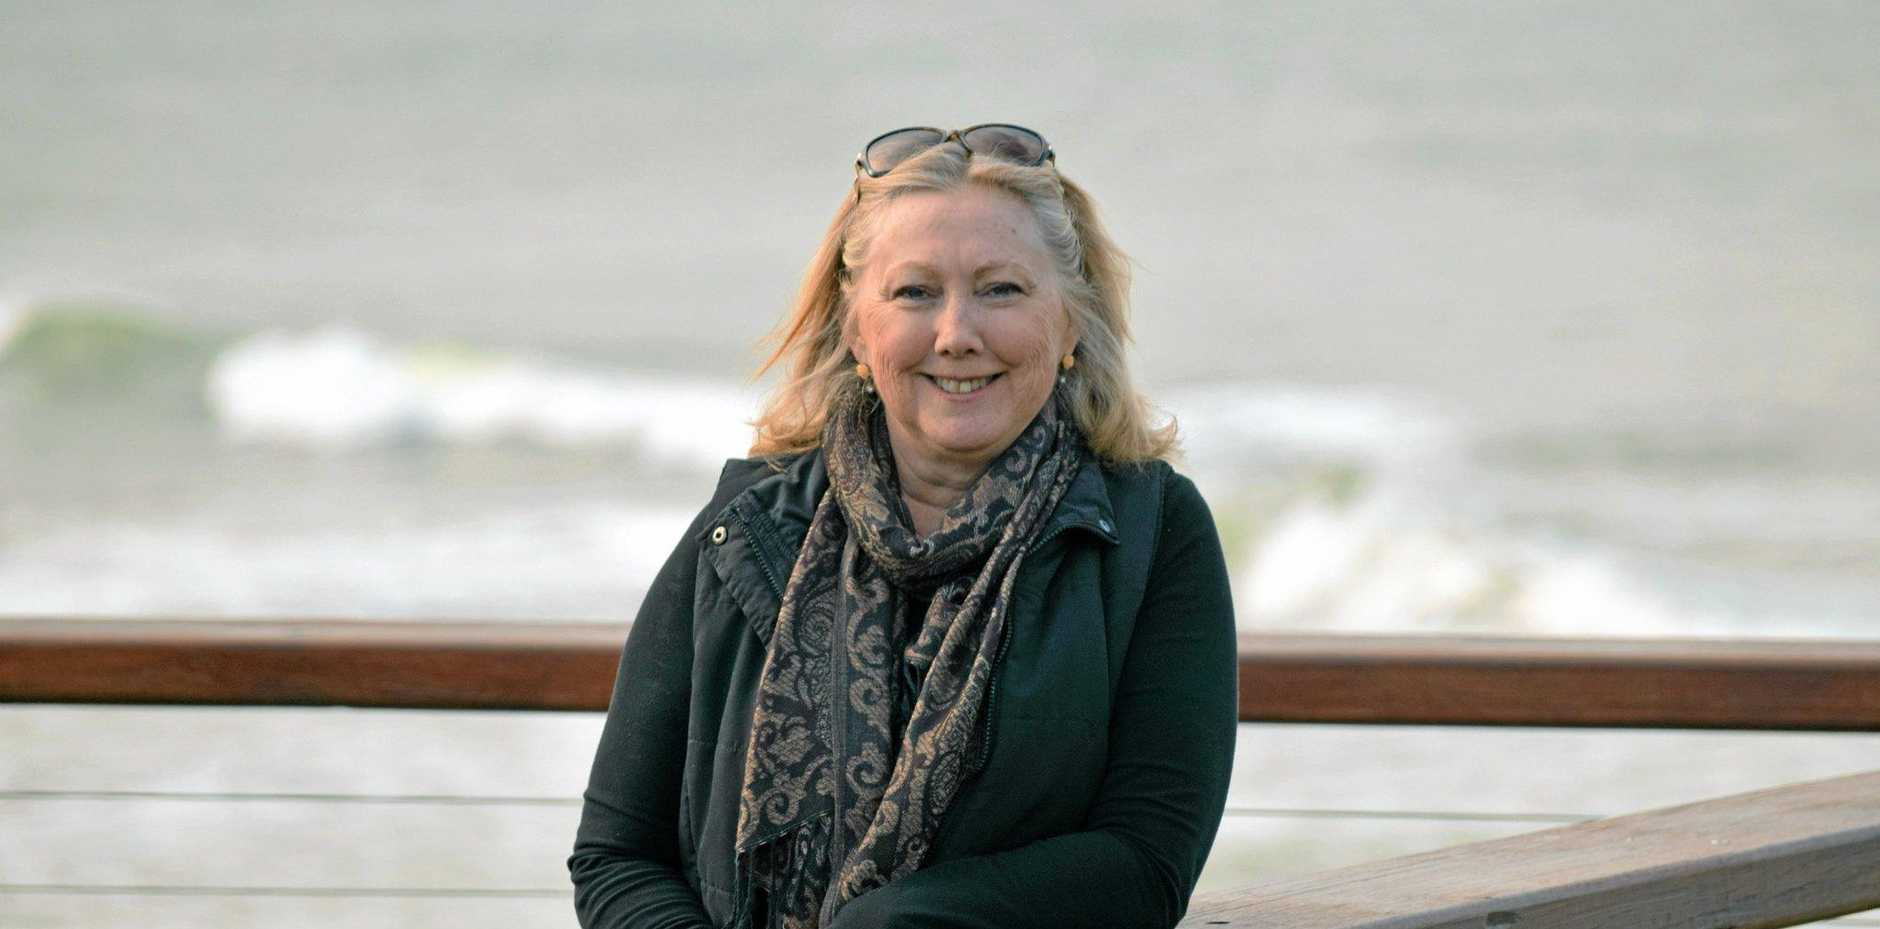 RECOGNISED: Sports commentator, journalist and Valla Beach resident Debbie Spillane is a recipient of the 2016 Medal of the Order of Australia.